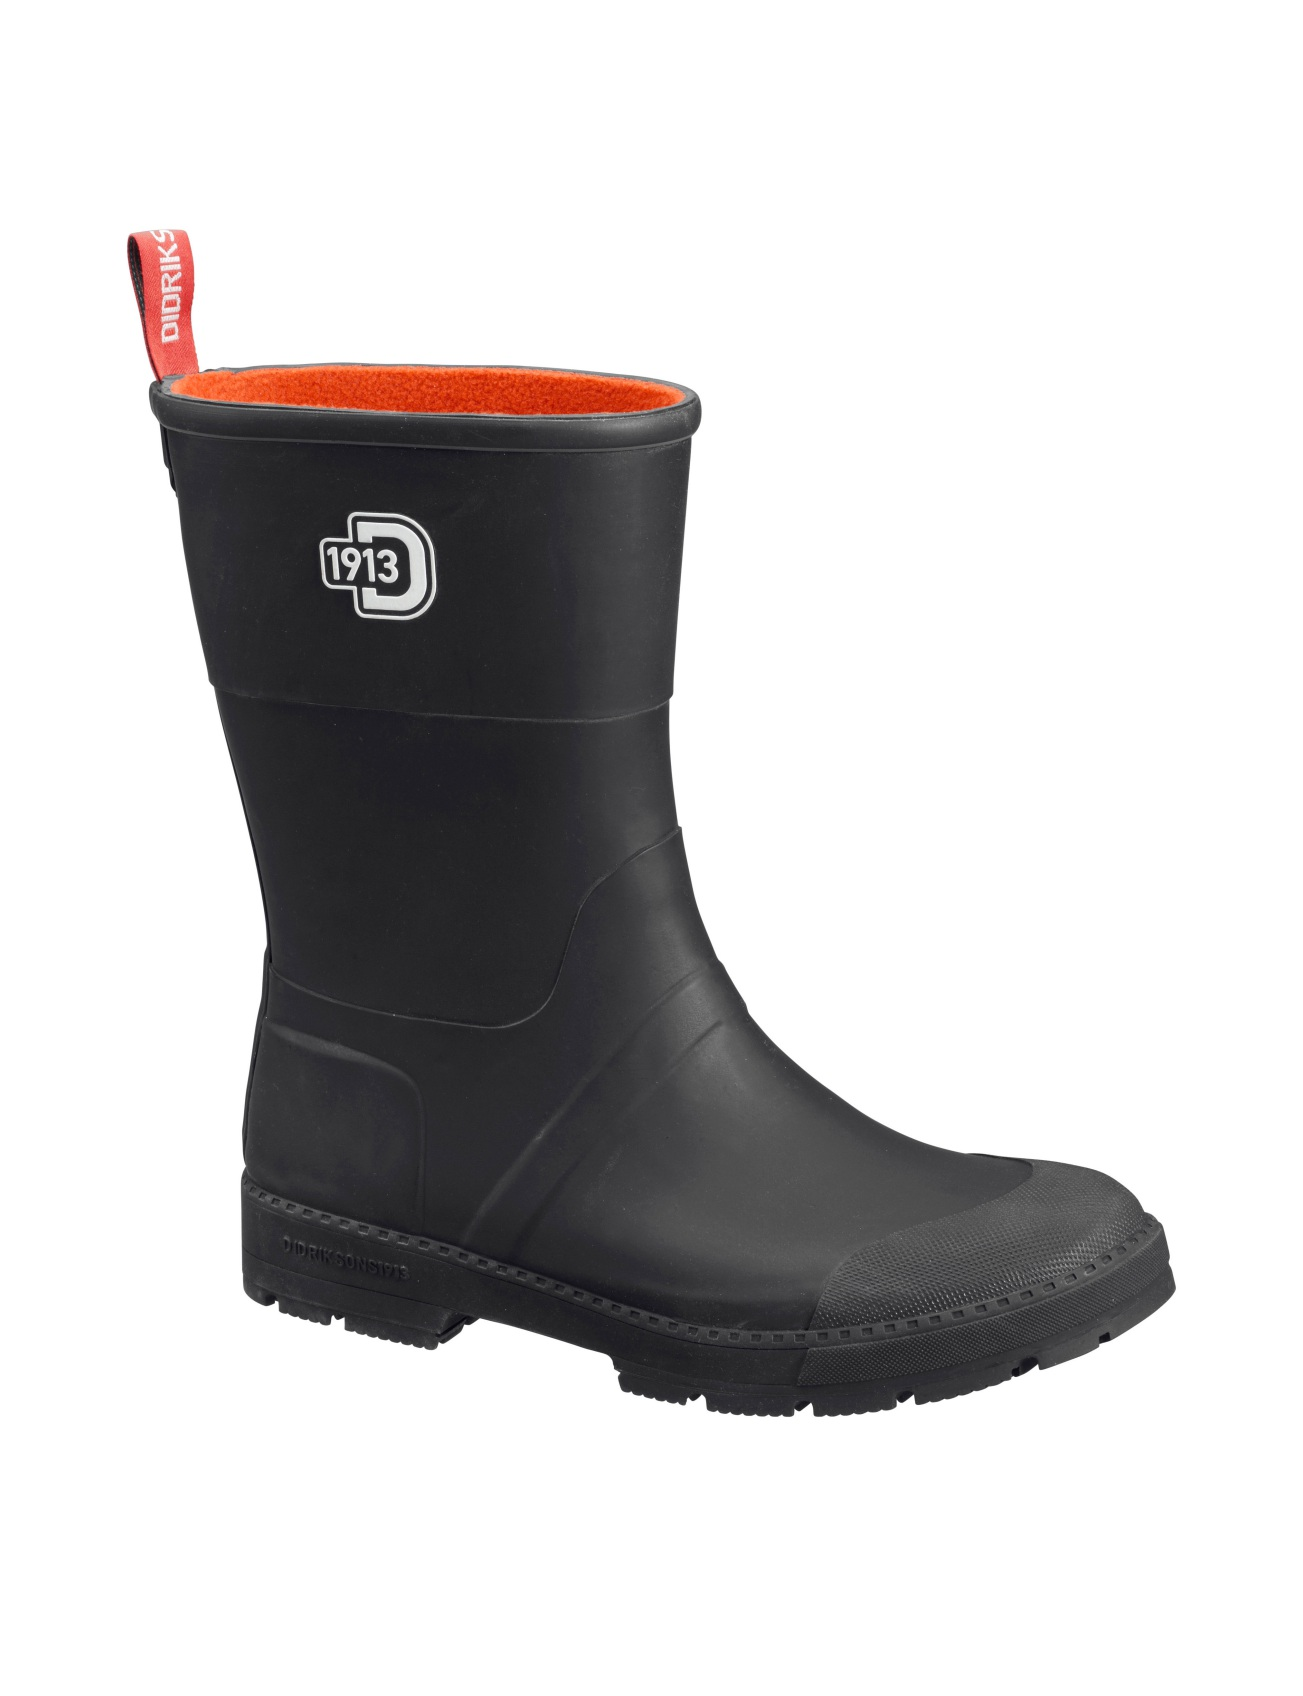 Didriksons Korno Mens Rubber Boots